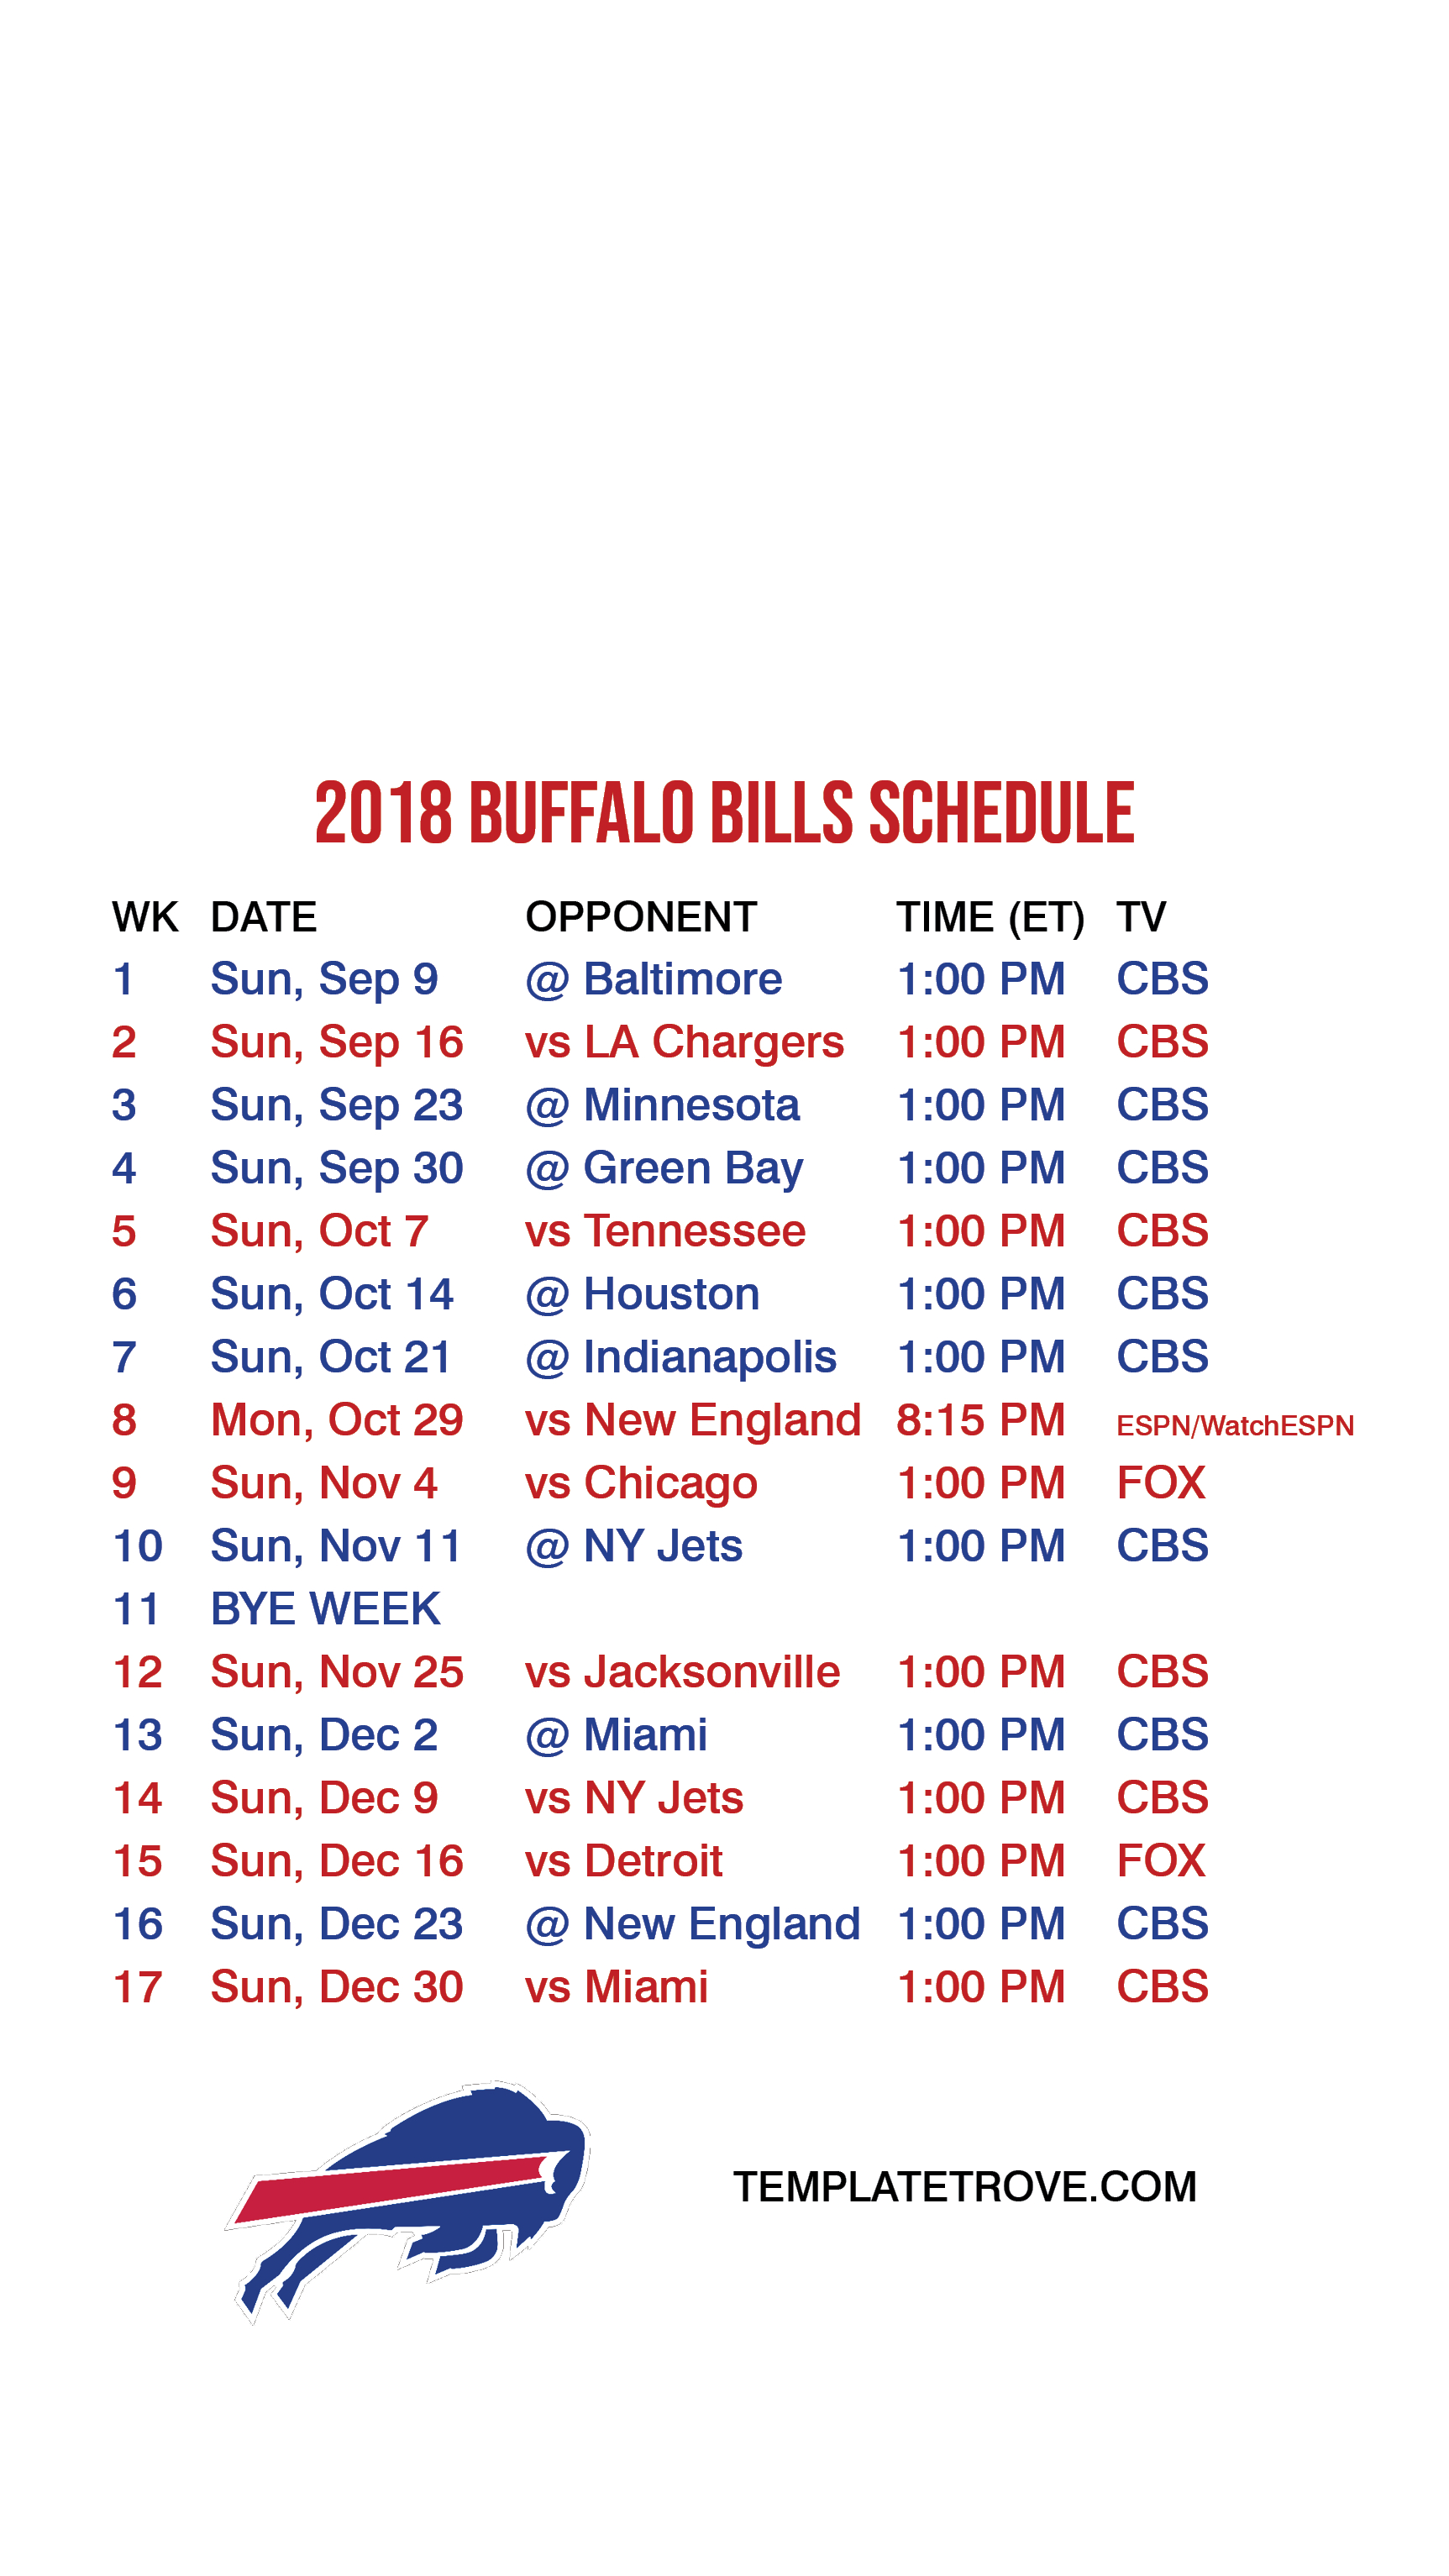 2018-2019 Buffalo Bills Lock Screen Schedule For Iphone 6-7